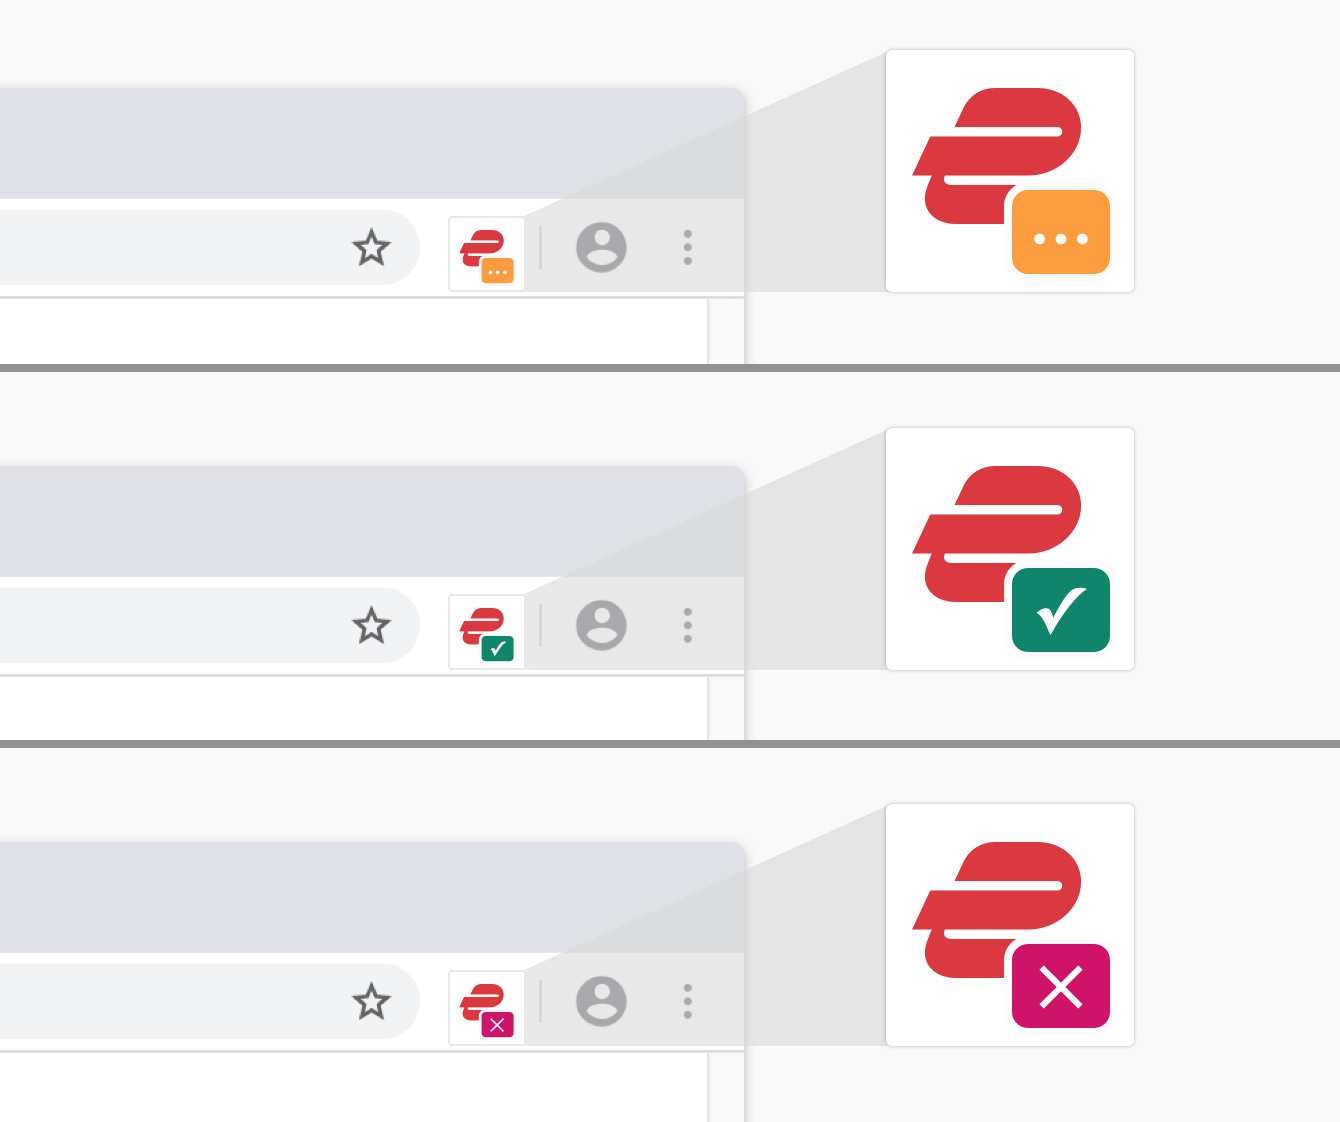 See your VPN status at a glance in the browser toolbar: orange while connecting, green when connected, and red for errors.